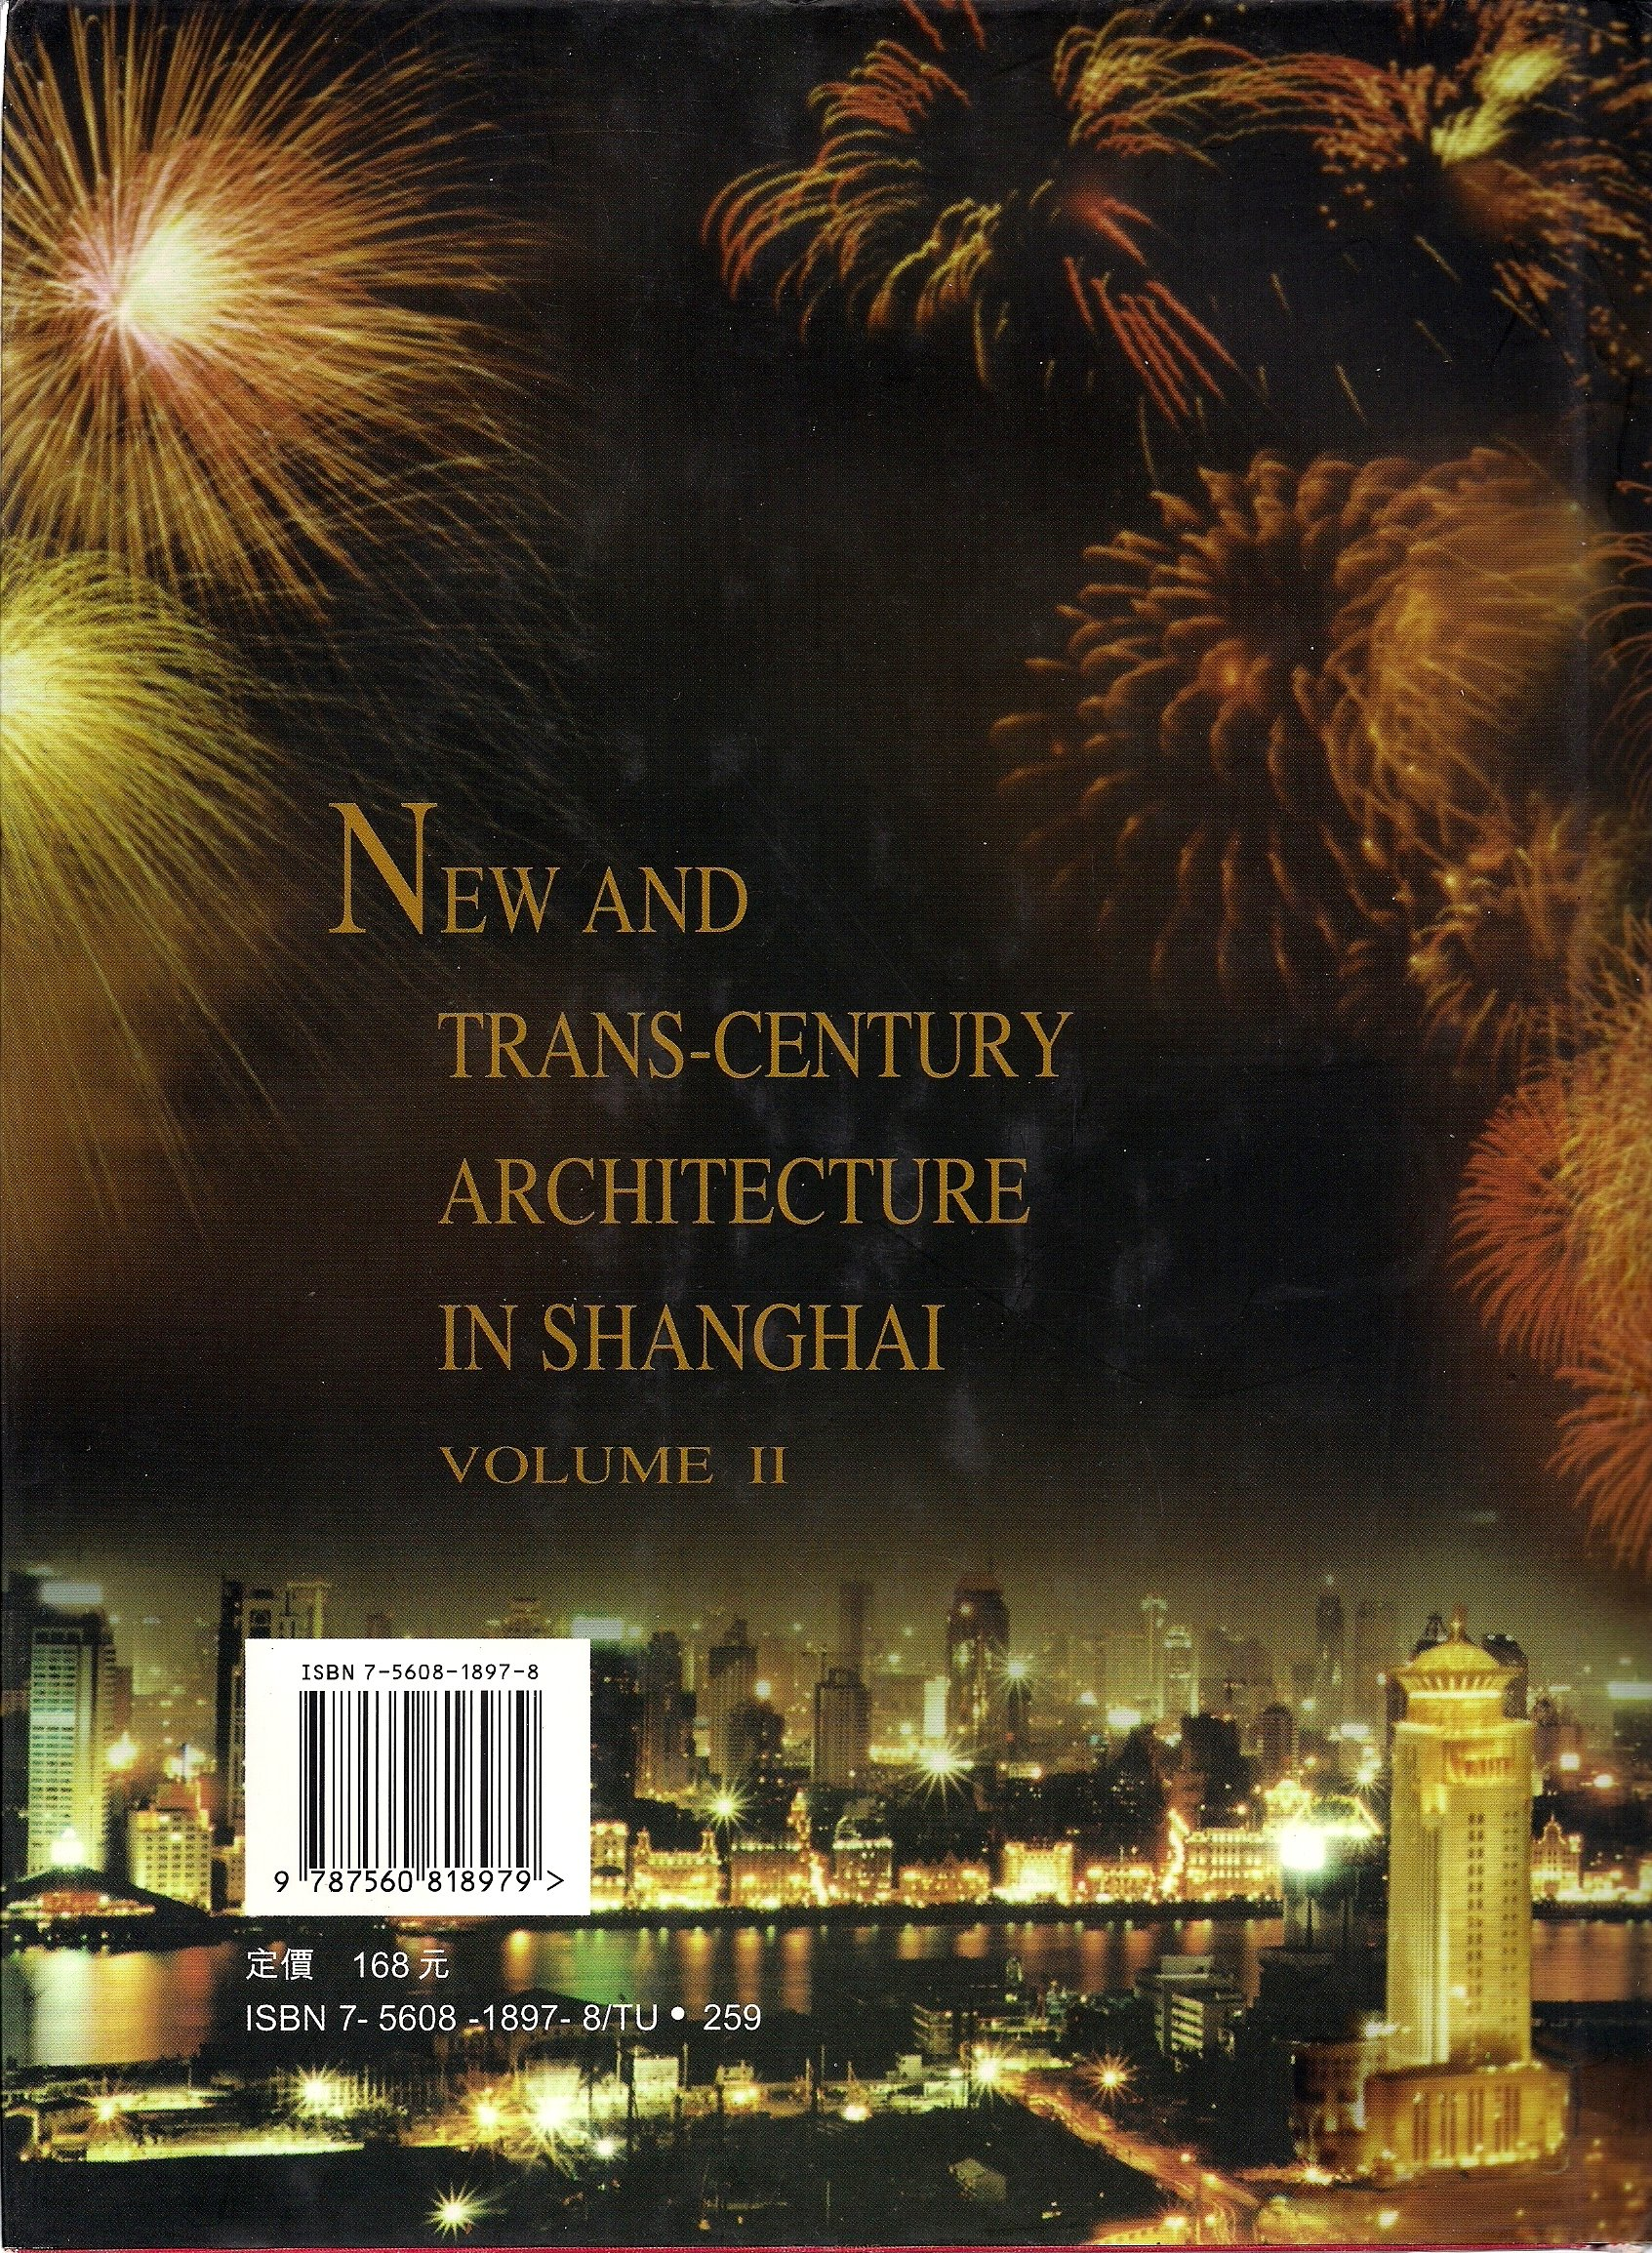 New and Trans-Century Architecture in Shanghai /Kʻua shih chi ti Shang-hai hsin chien chu, Volume 2